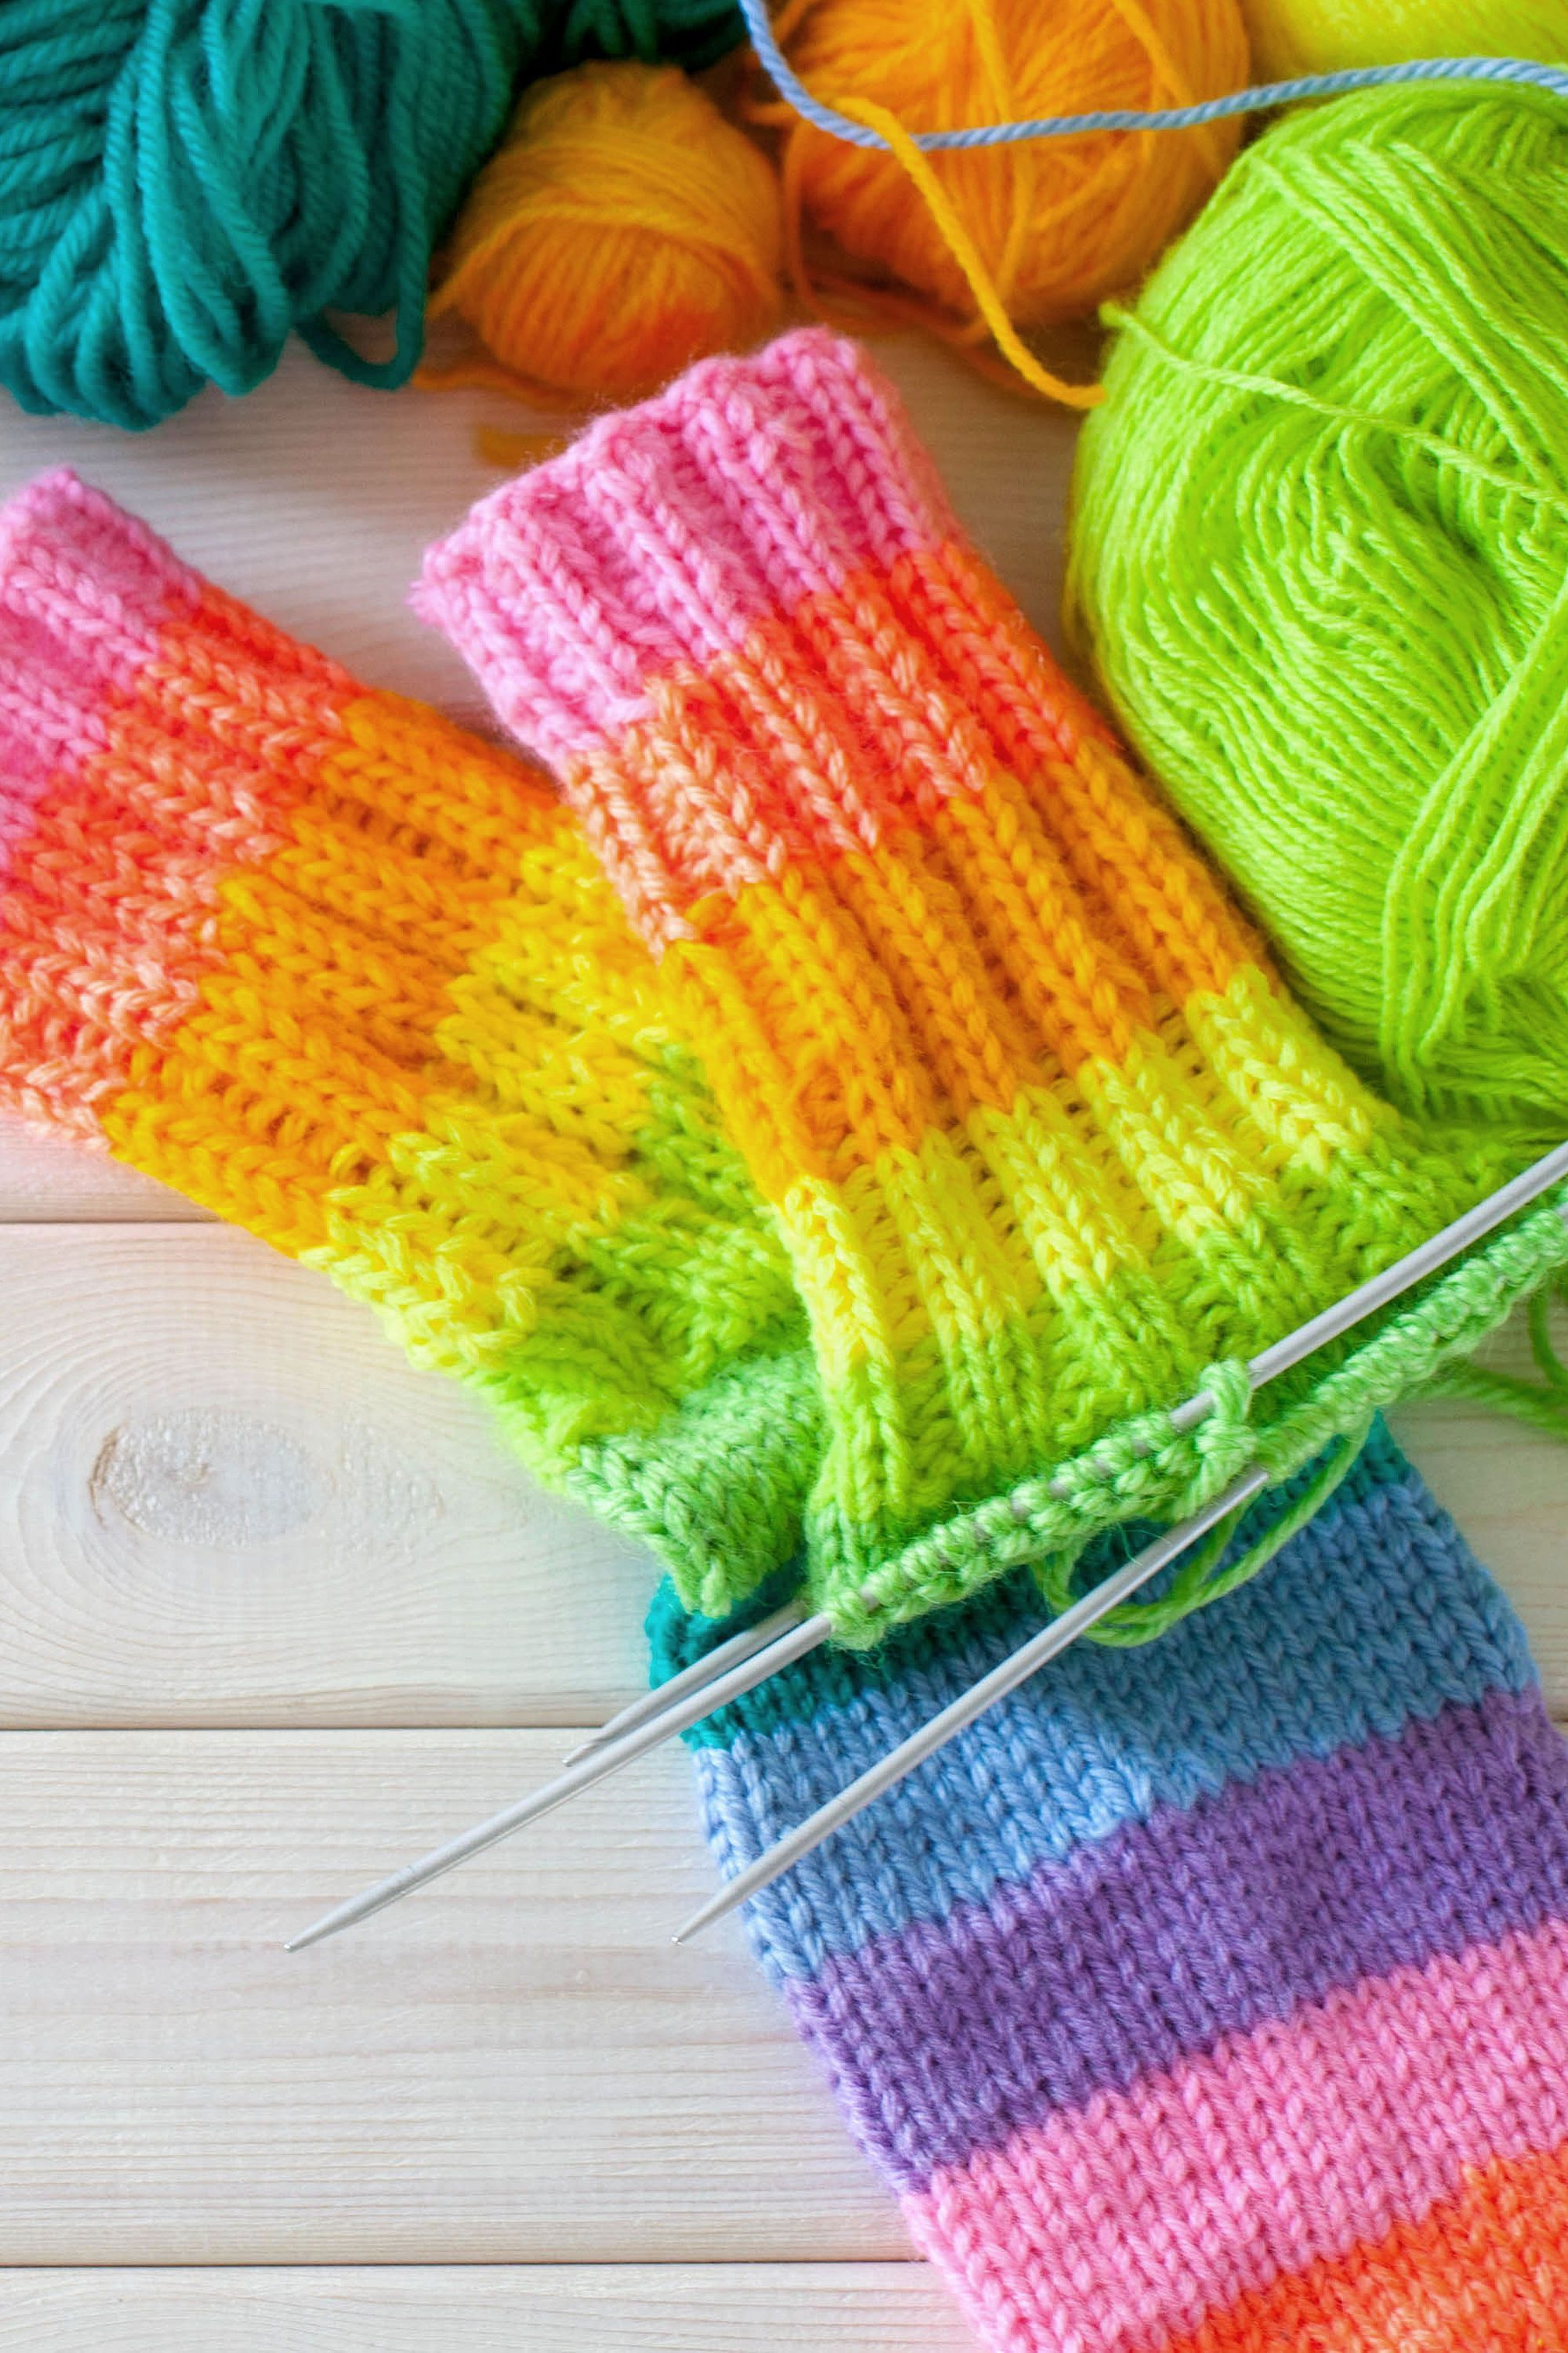 9 Free Online Knitting Patterns Sites (With images ...